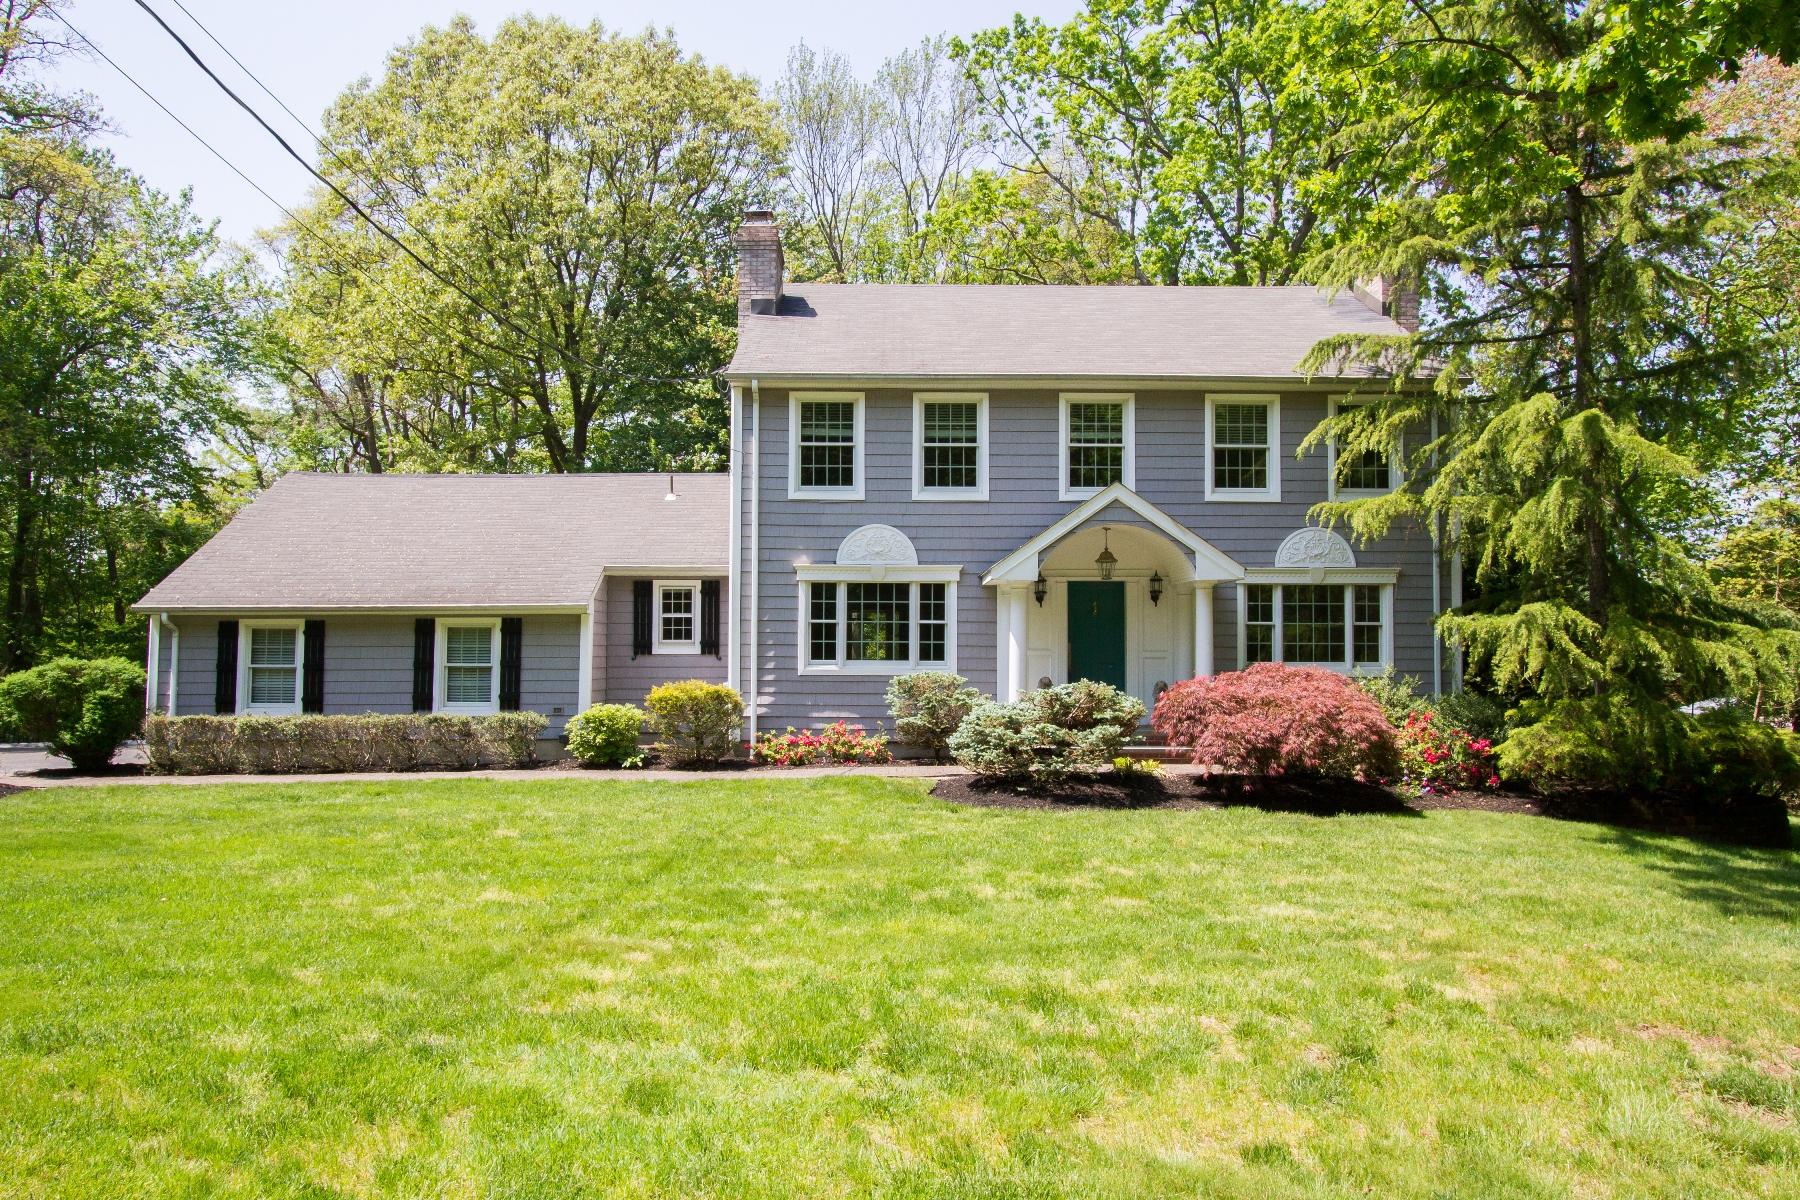 Single Family Home for Sale at 184 Chapel Hill Road Middletown, New Jersey 07748 United States